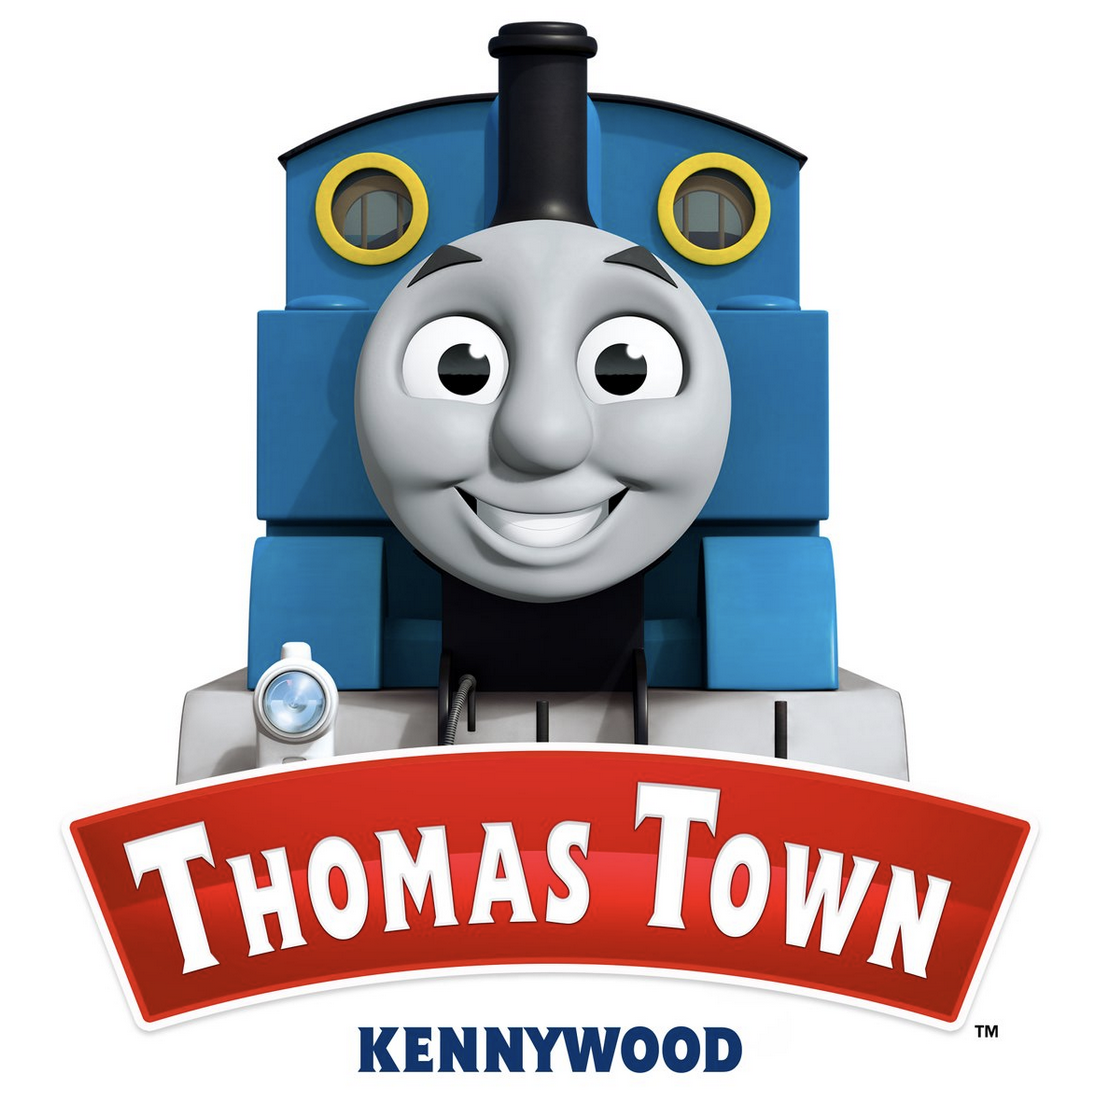 NewsPlusNotes: Thomas Town Heading to Kennywood in Major 2018 Expansion